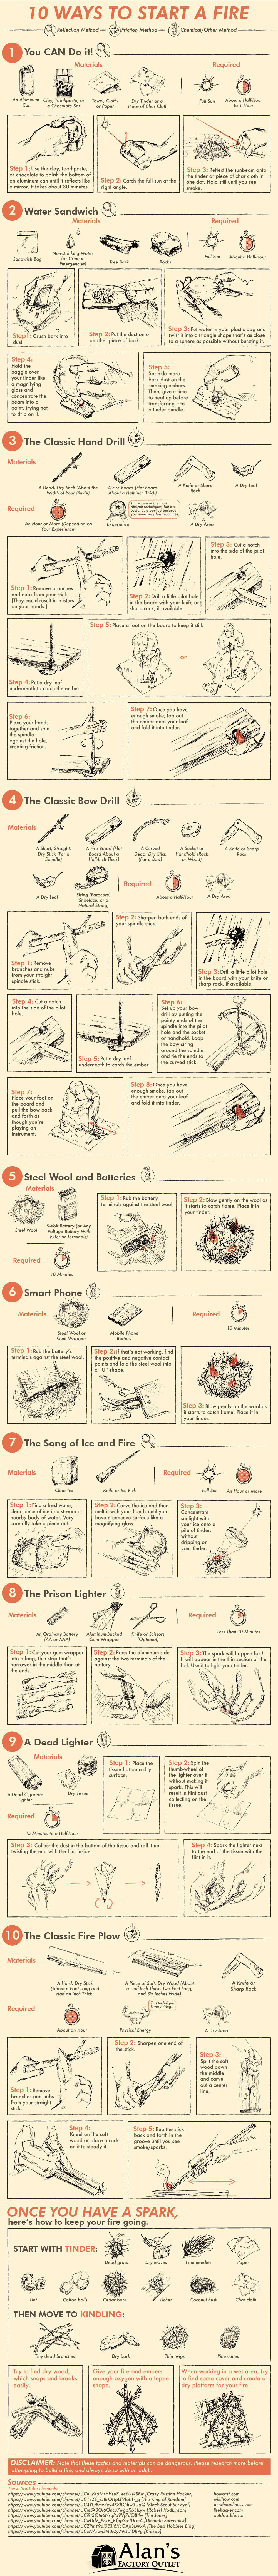 How to Start a Fire: 10 Novel Methods - Infographic